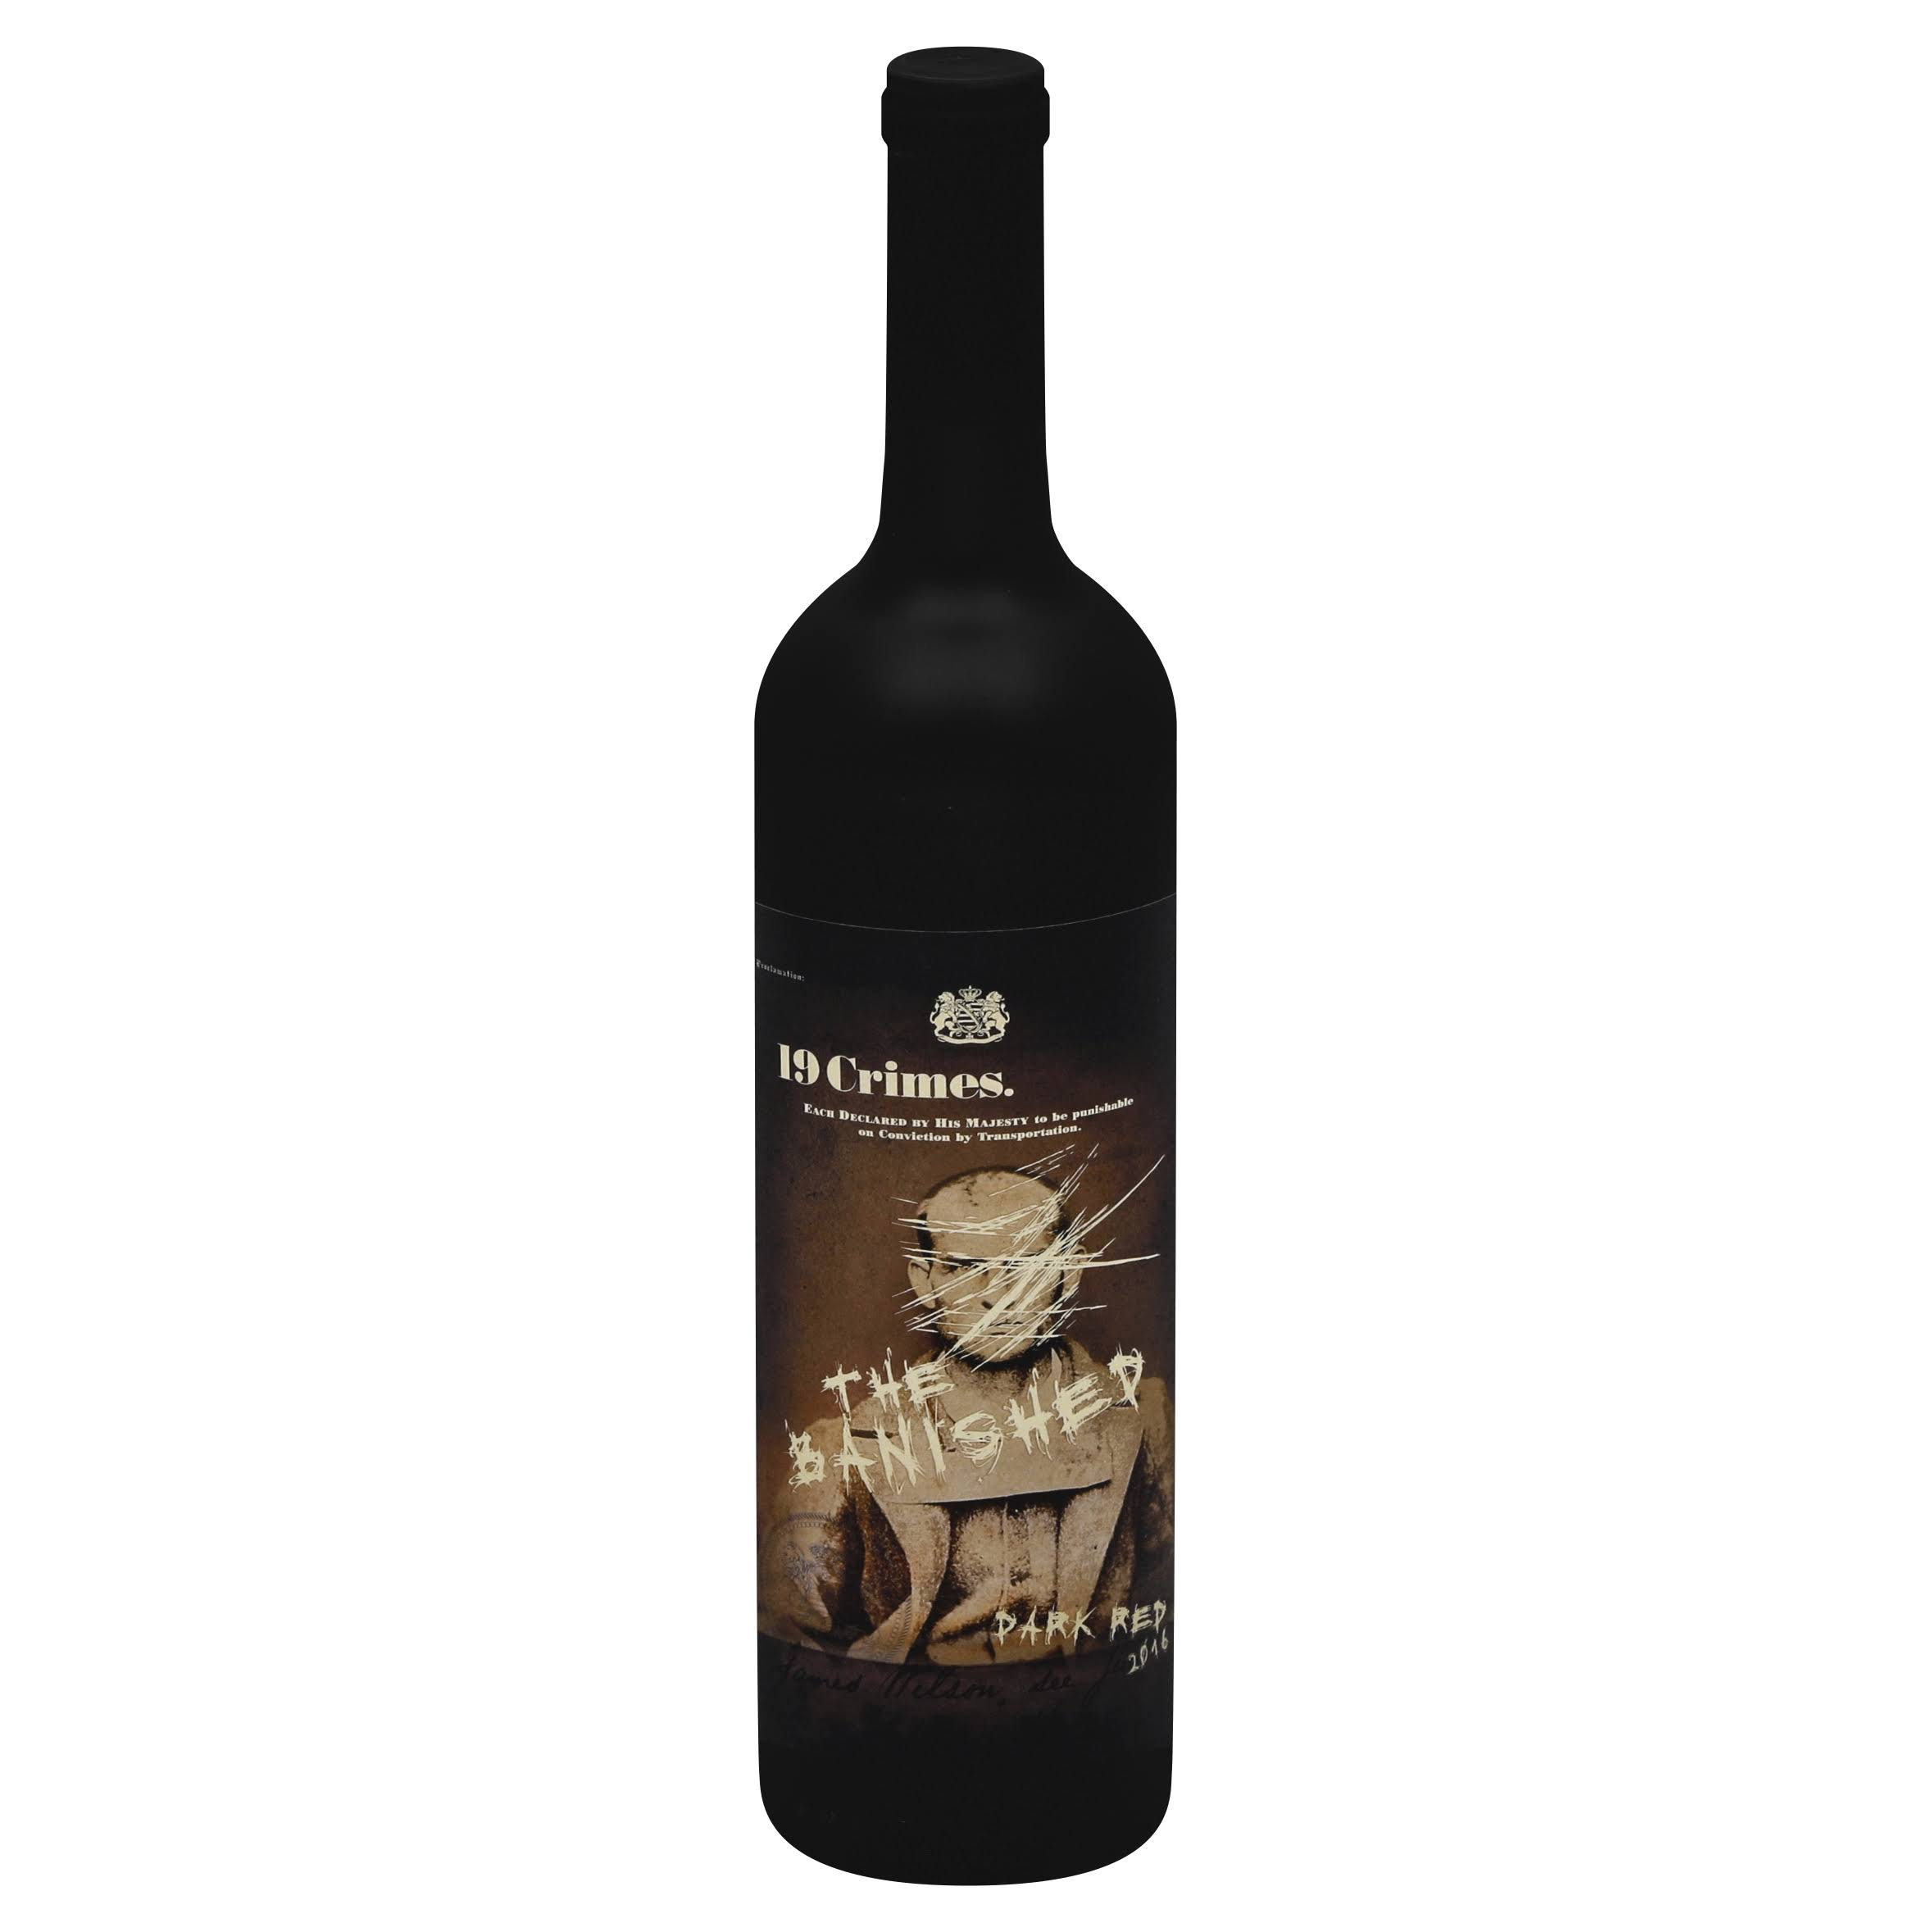 19 Crimes Dark Red, The Banished, 2016 - 750 ml